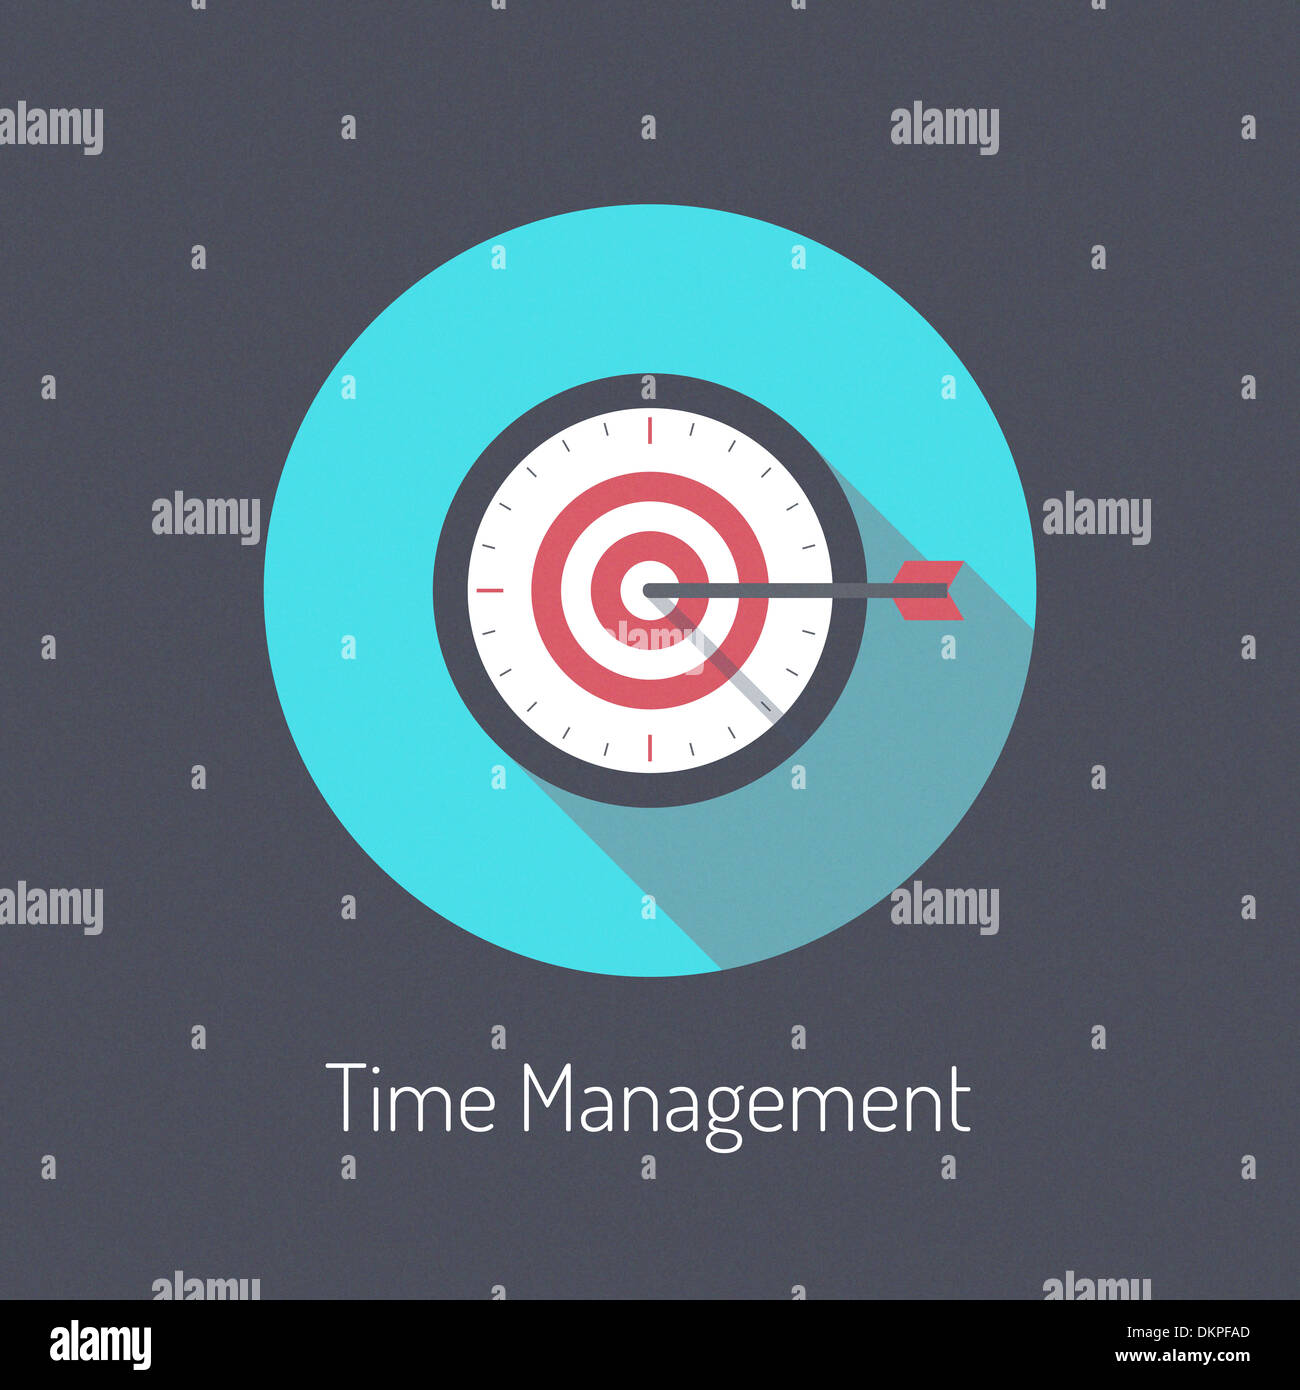 Flat design modern illustration poster concept of time management planning process and business metaphor time is money - Stock Image